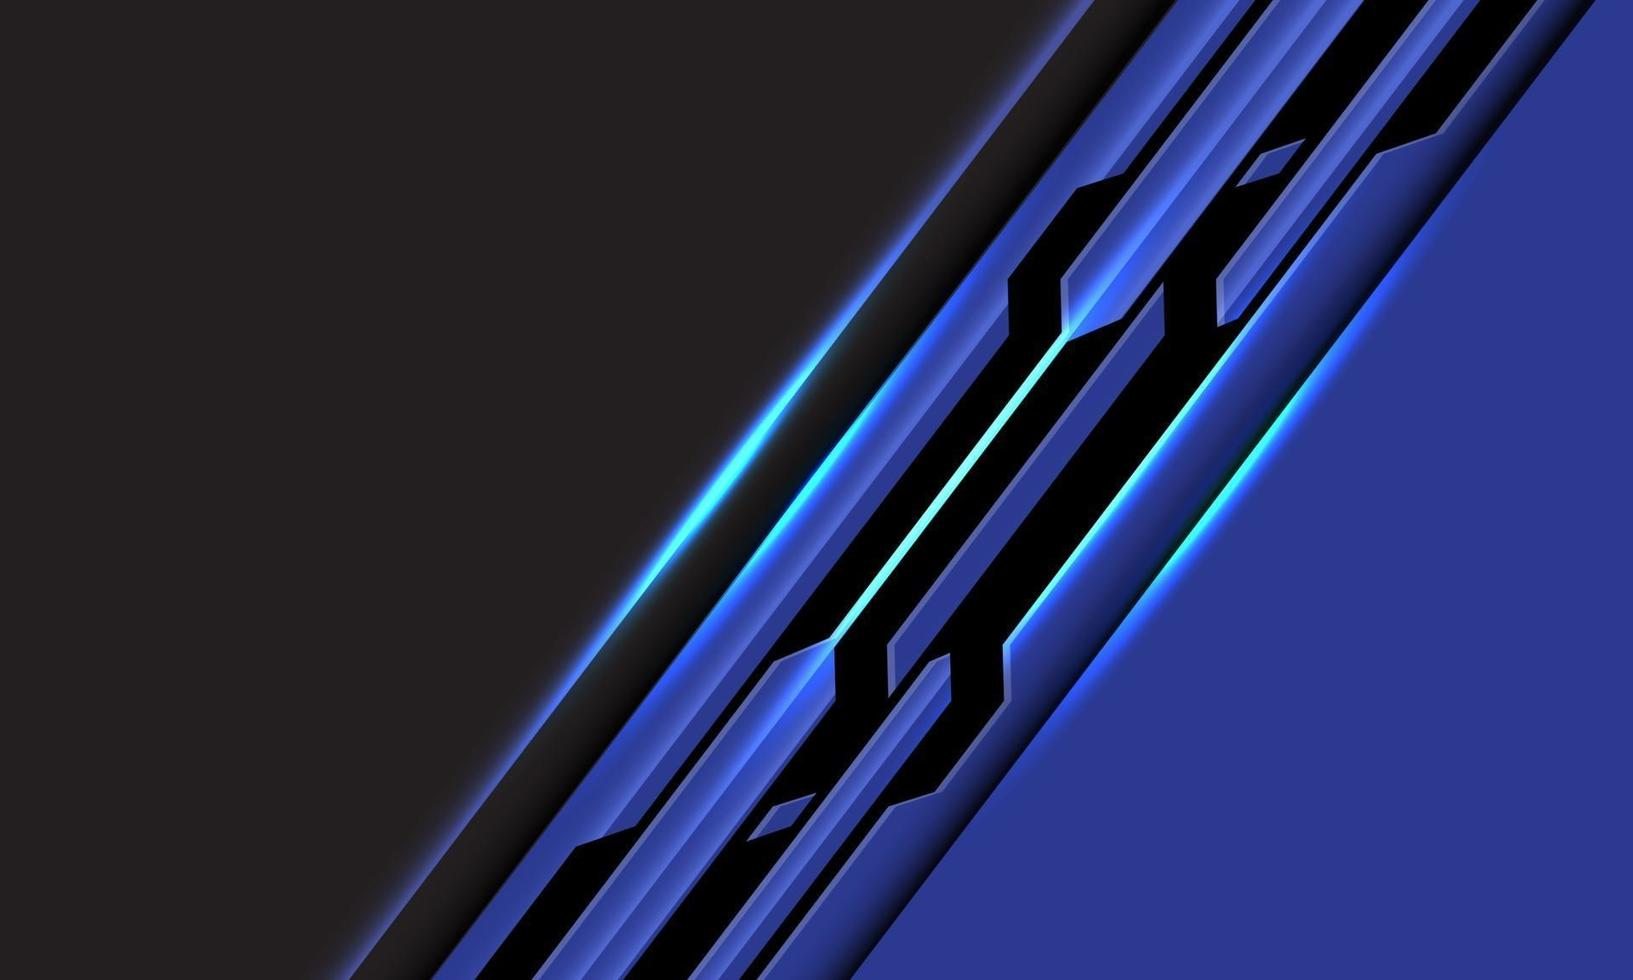 Abstract blue black line circuit cyber slash on grey blank space design modern futuristic technology background vector illustration.